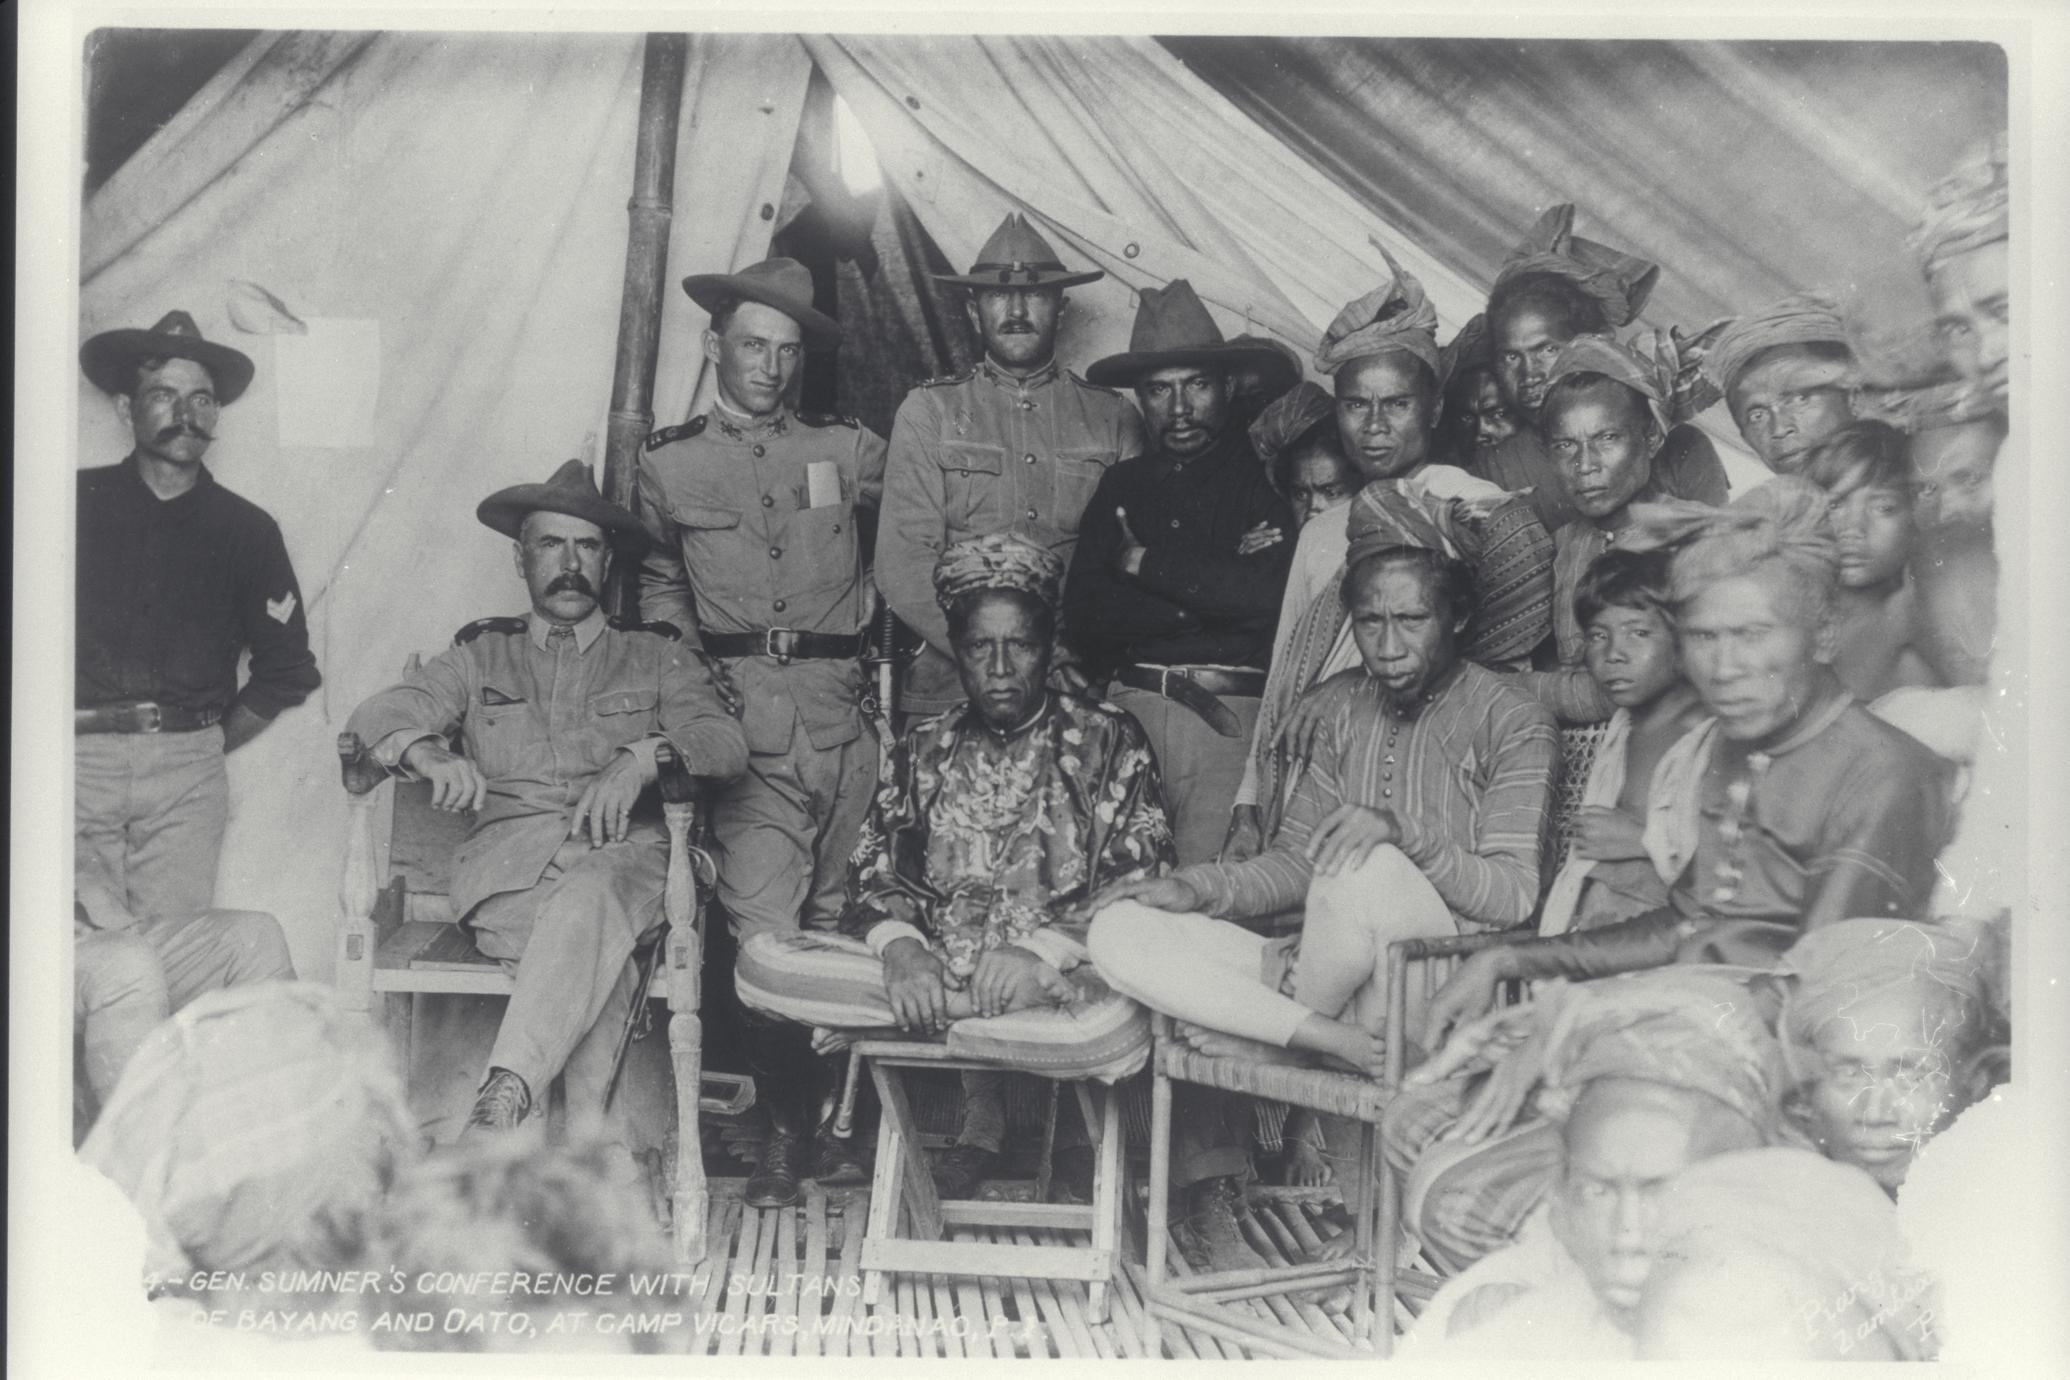 Conference between General Sumner and the Sultans of Bayang and Dato, Mindanao, 1899-1902